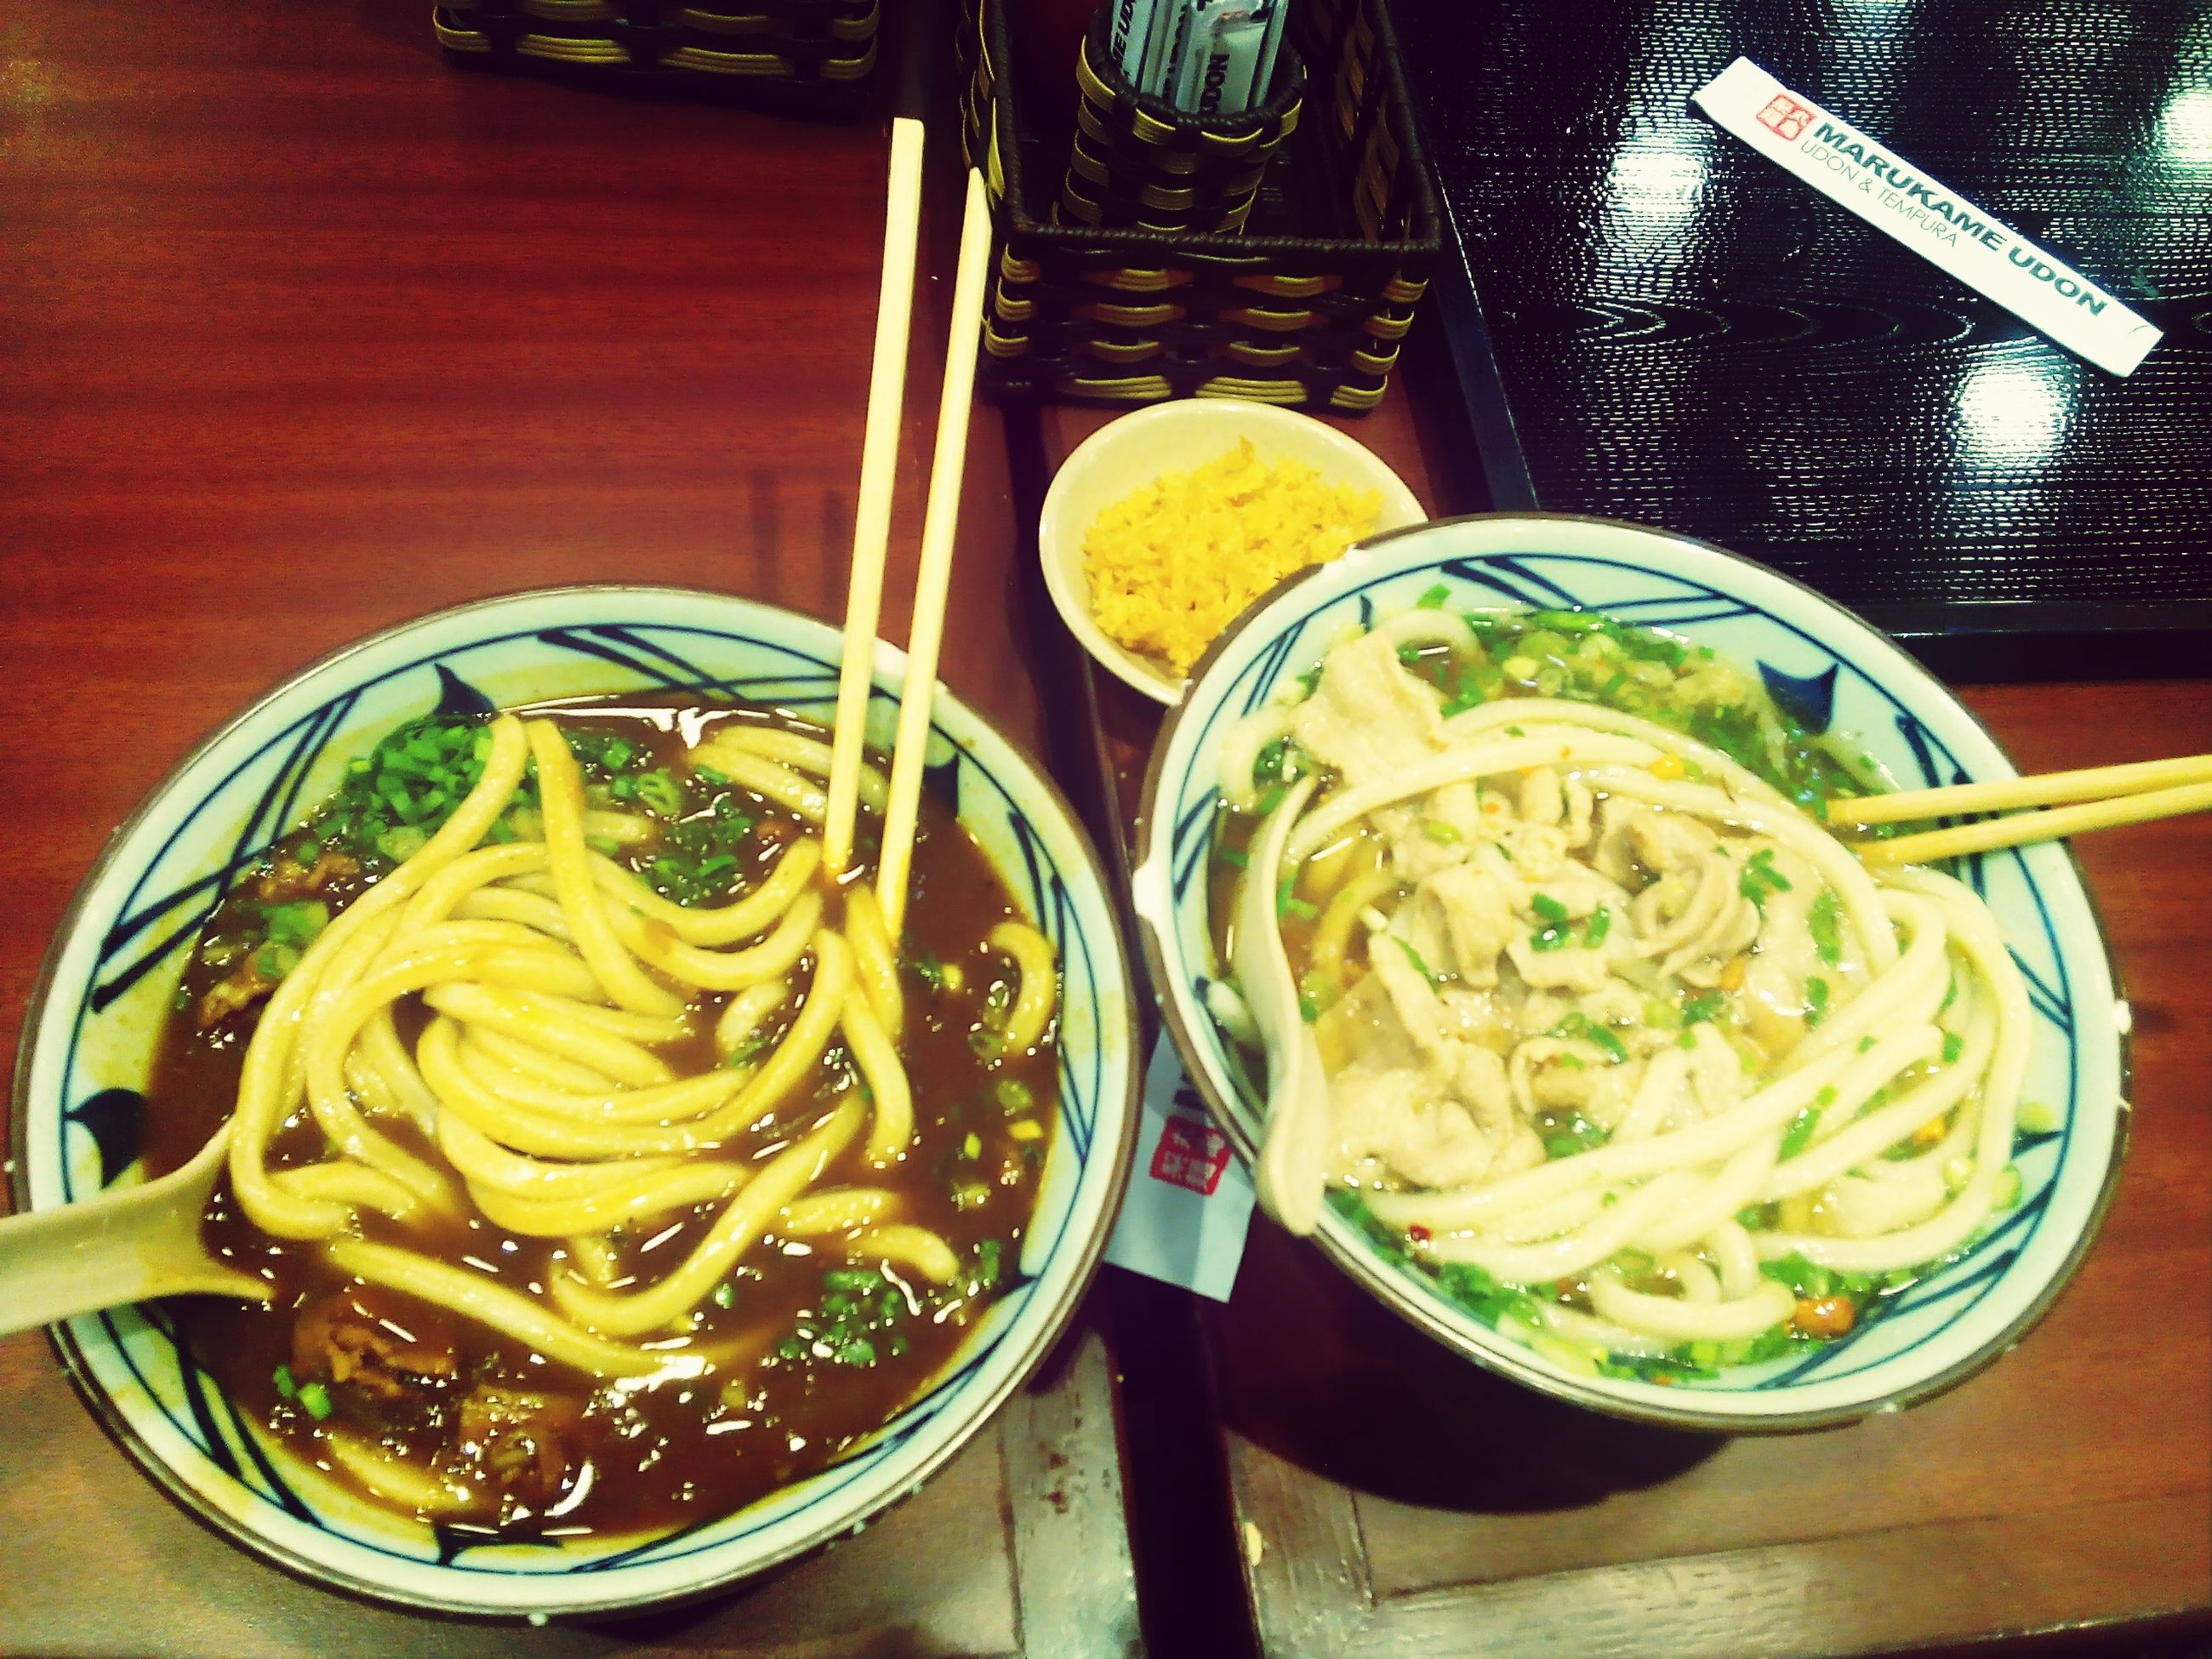 food and drink, indoors, freshness, food, table, healthy eating, bowl, still life, ready-to-eat, noodles, high angle view, plate, serving size, soup, drink, spoon, meal, chopsticks, close-up, drinking glass